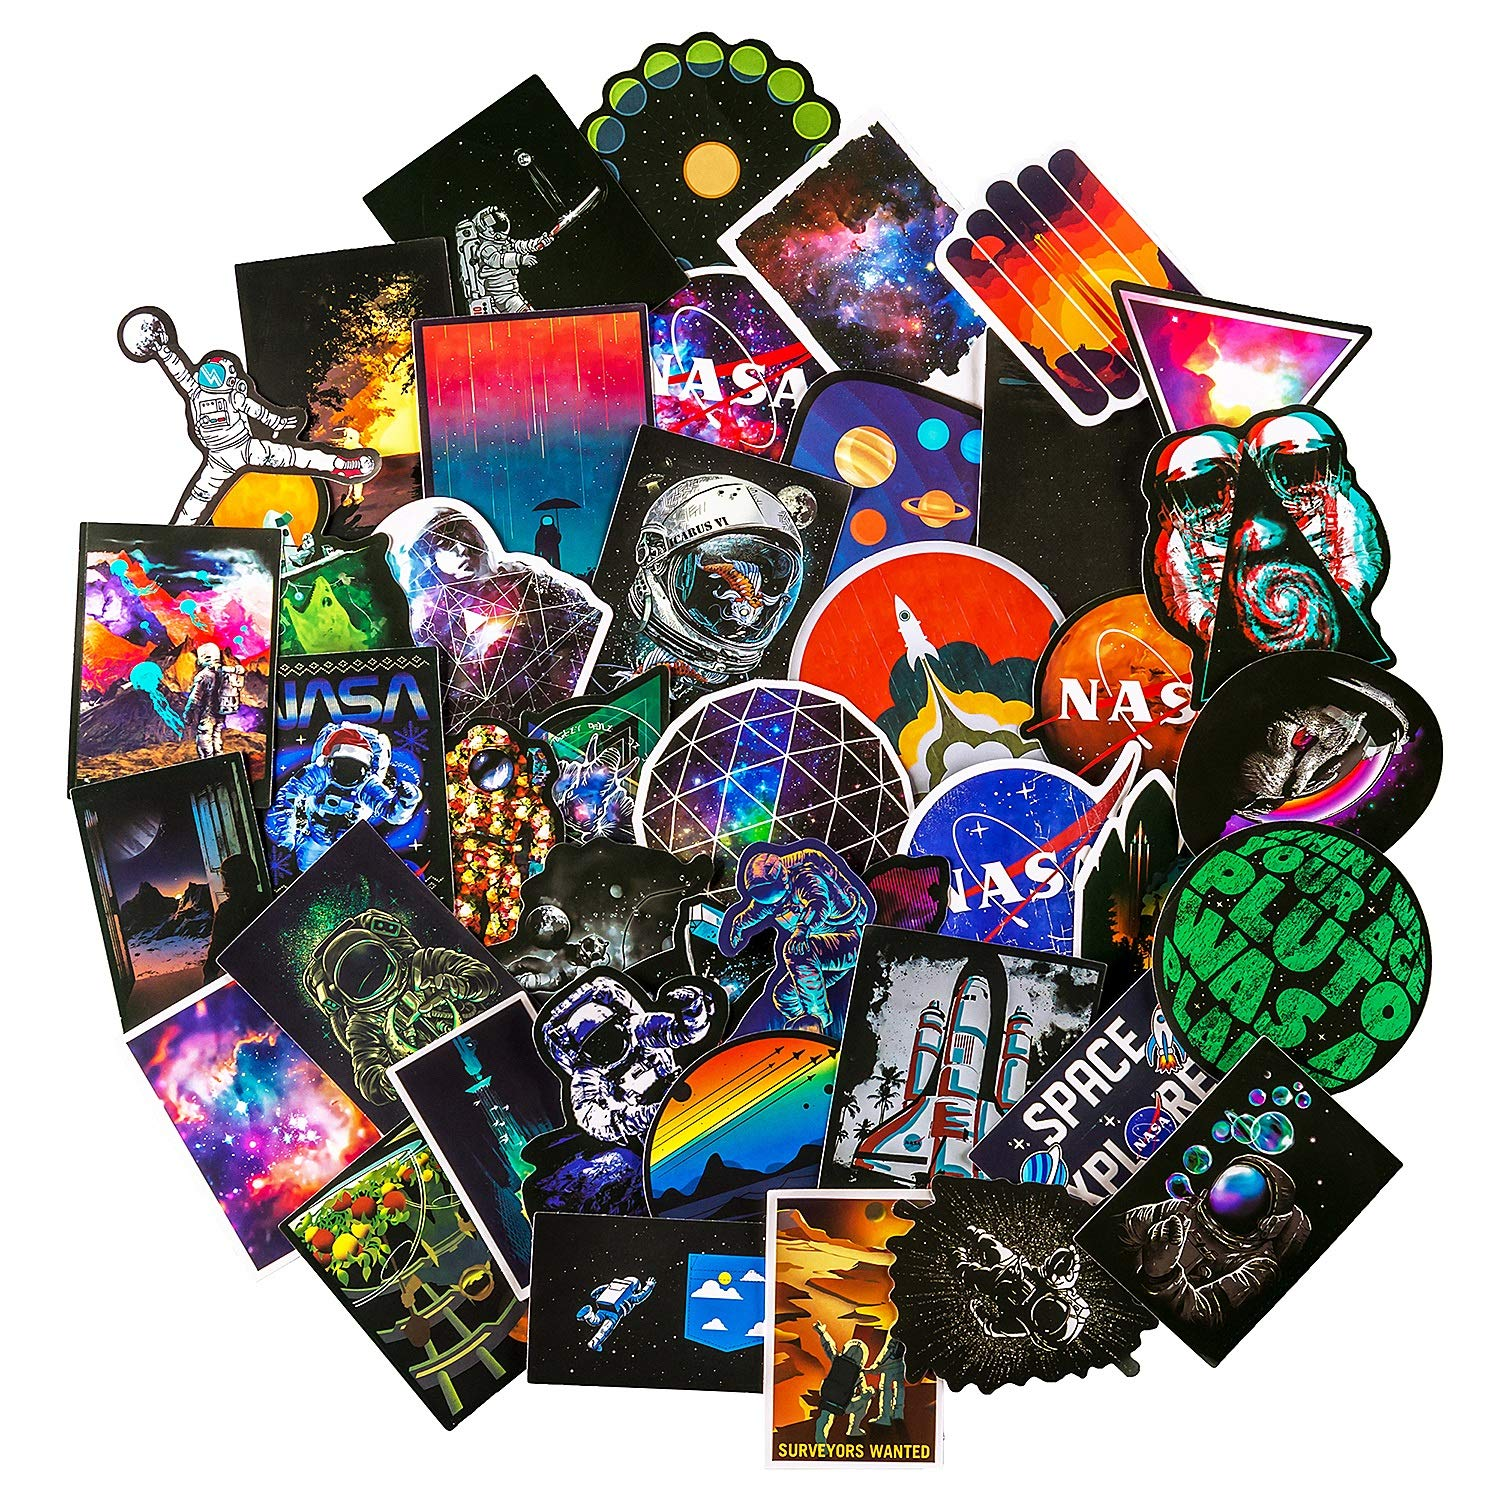 Stickers Calcos 100 un. NASA Origen U.S.A. (7MD5C8DK)